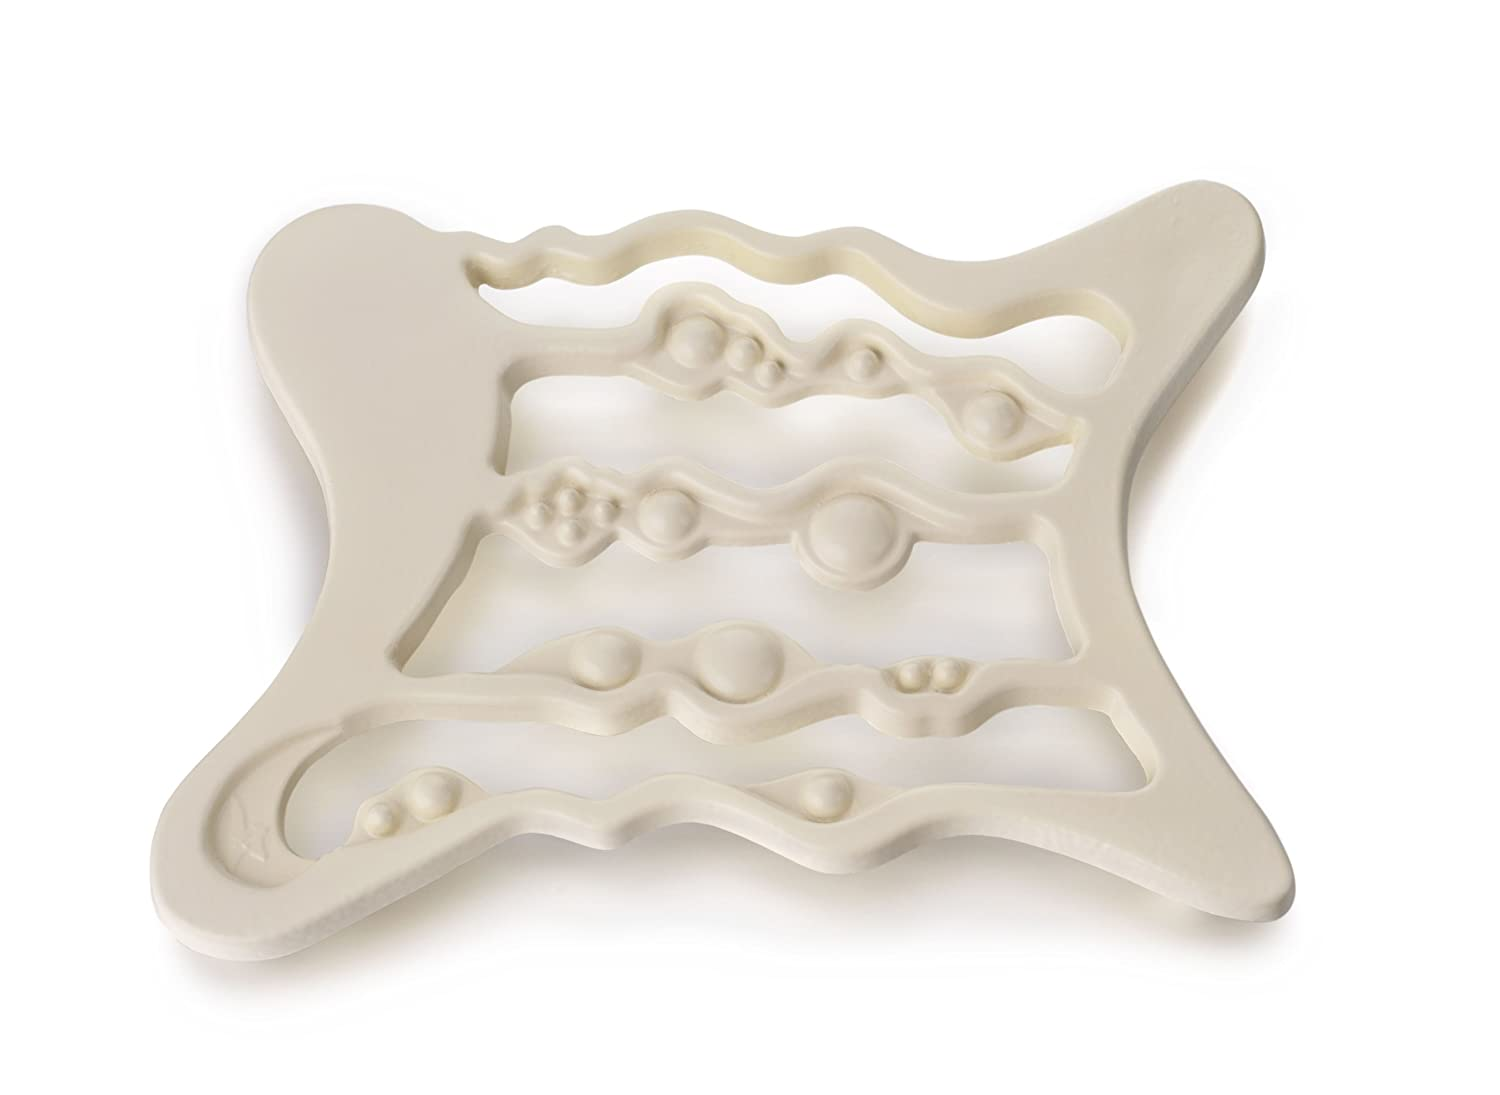 BexSimon Cast Iron Trivet, Cream BexSimon Collections Ltd BEXTR010(C)